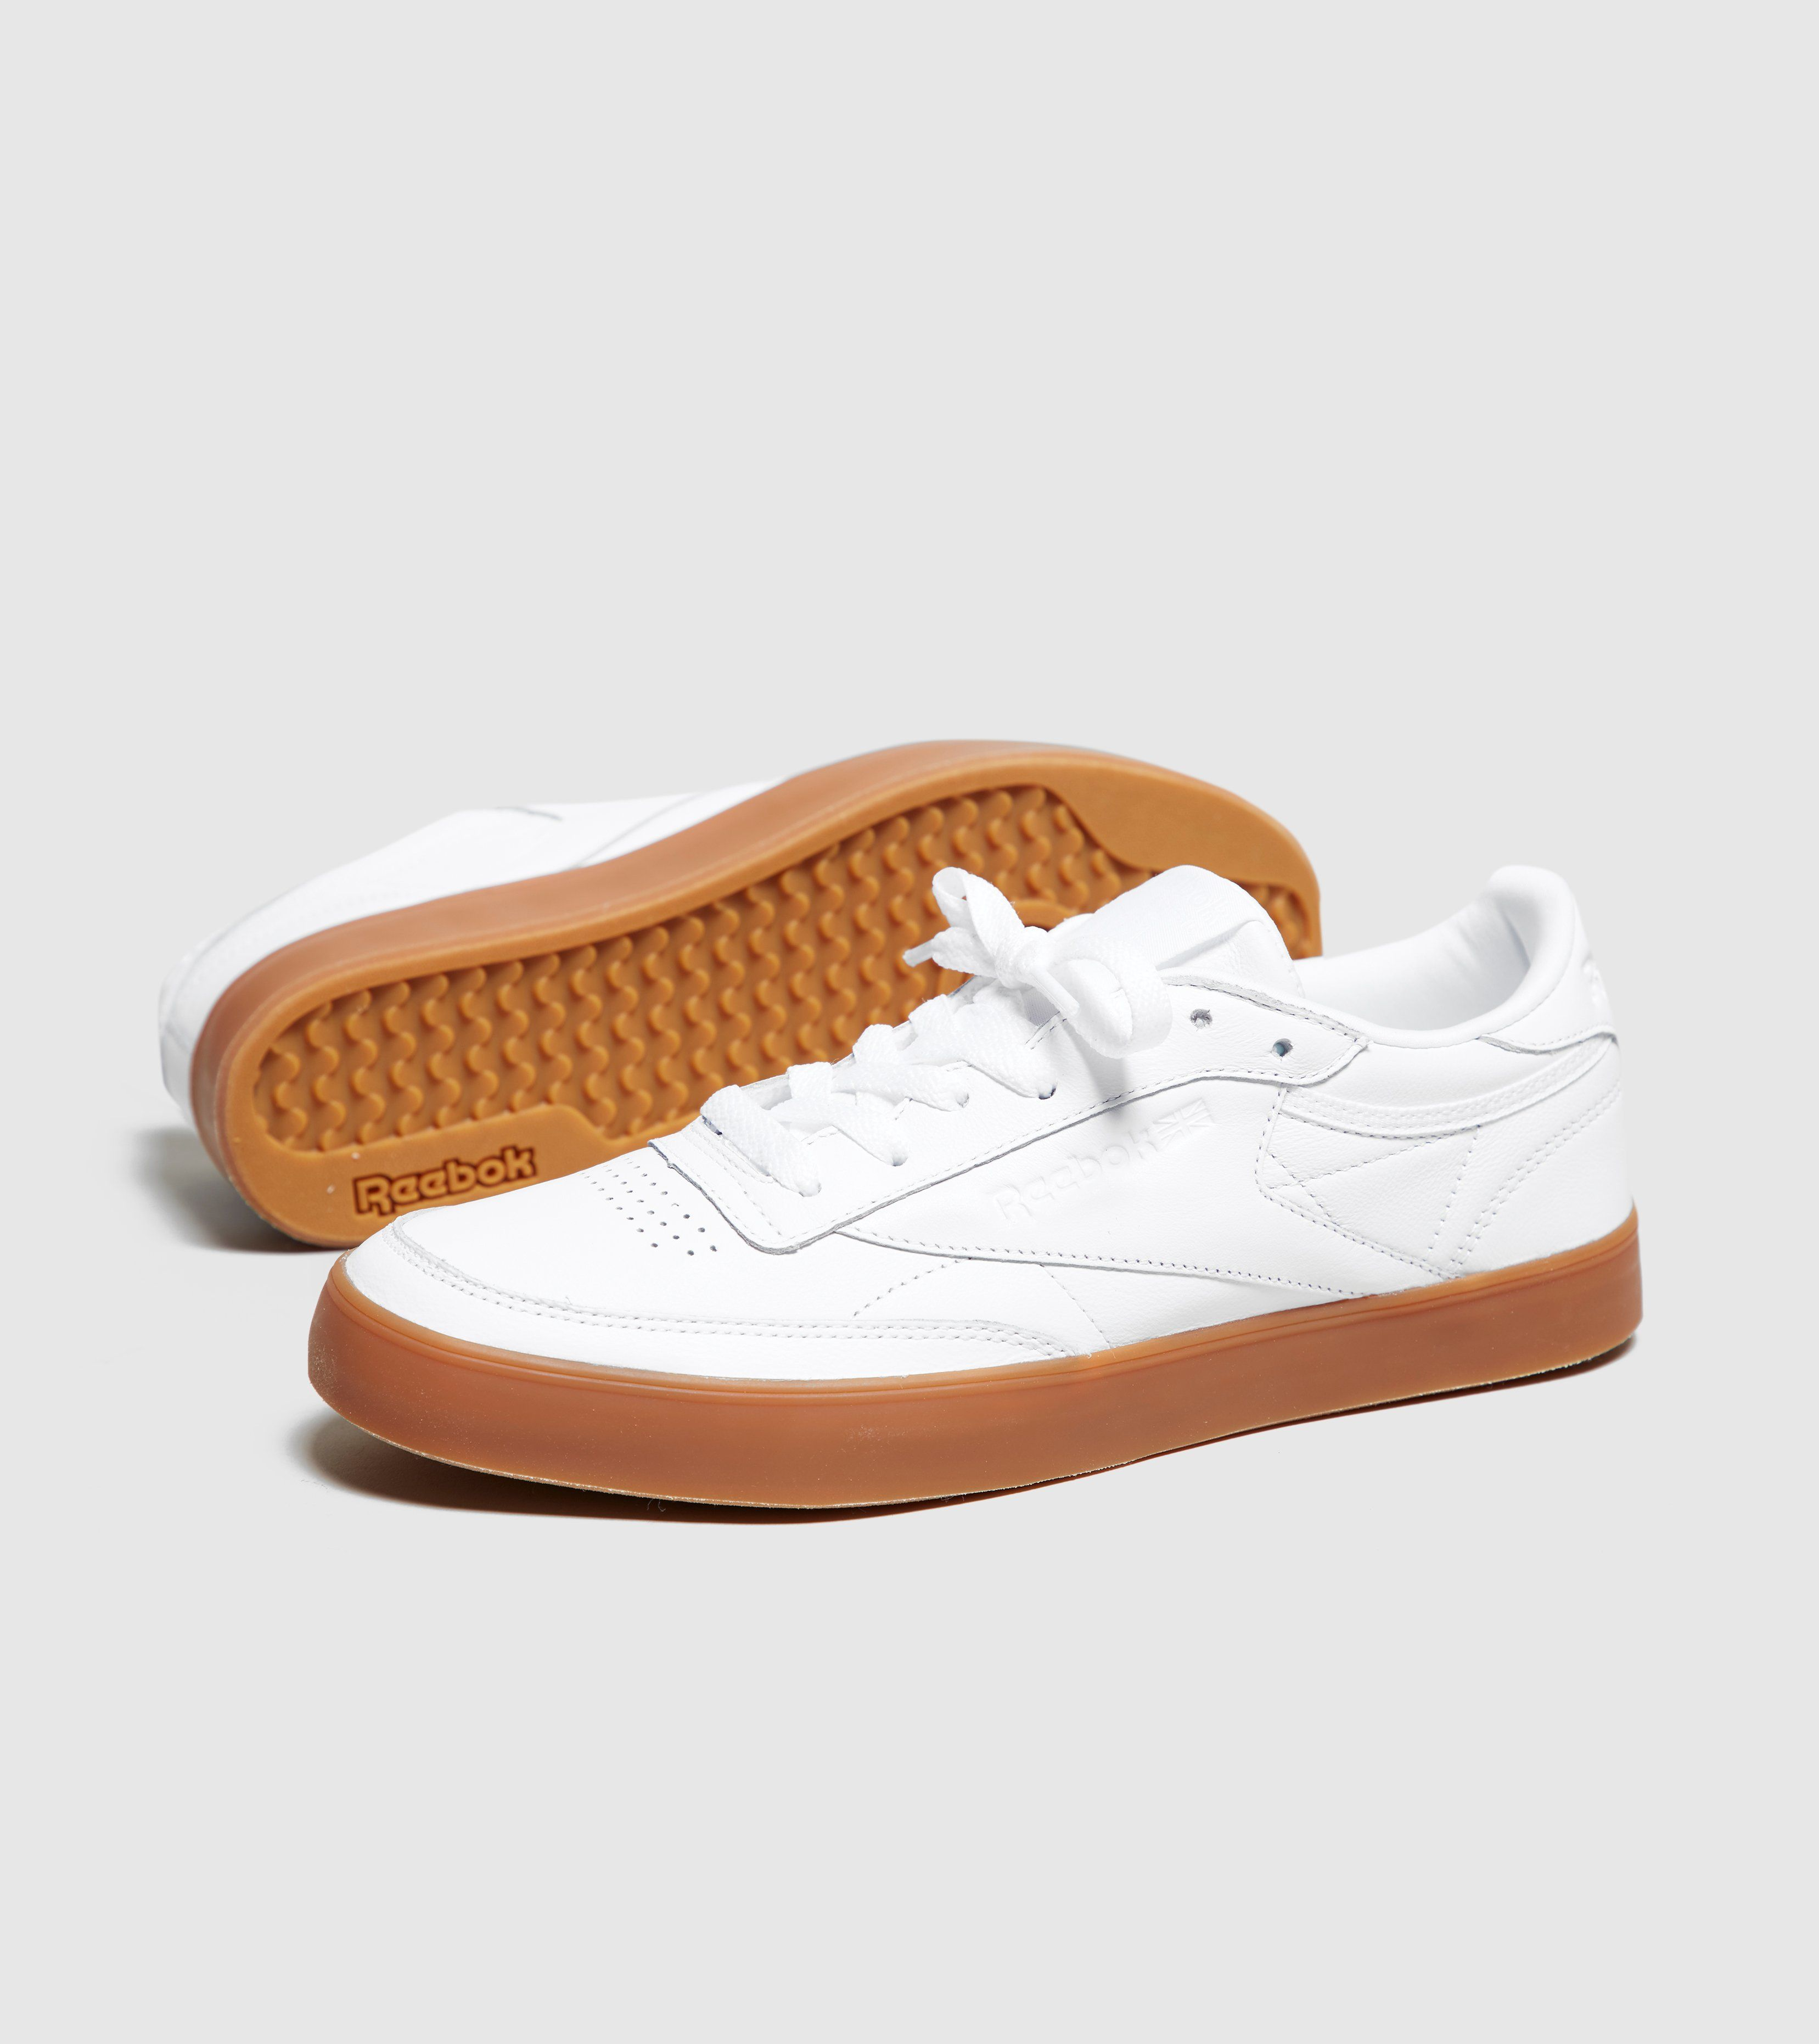 Reebok Club C Baskets Fvs - Blanc OQp0v7